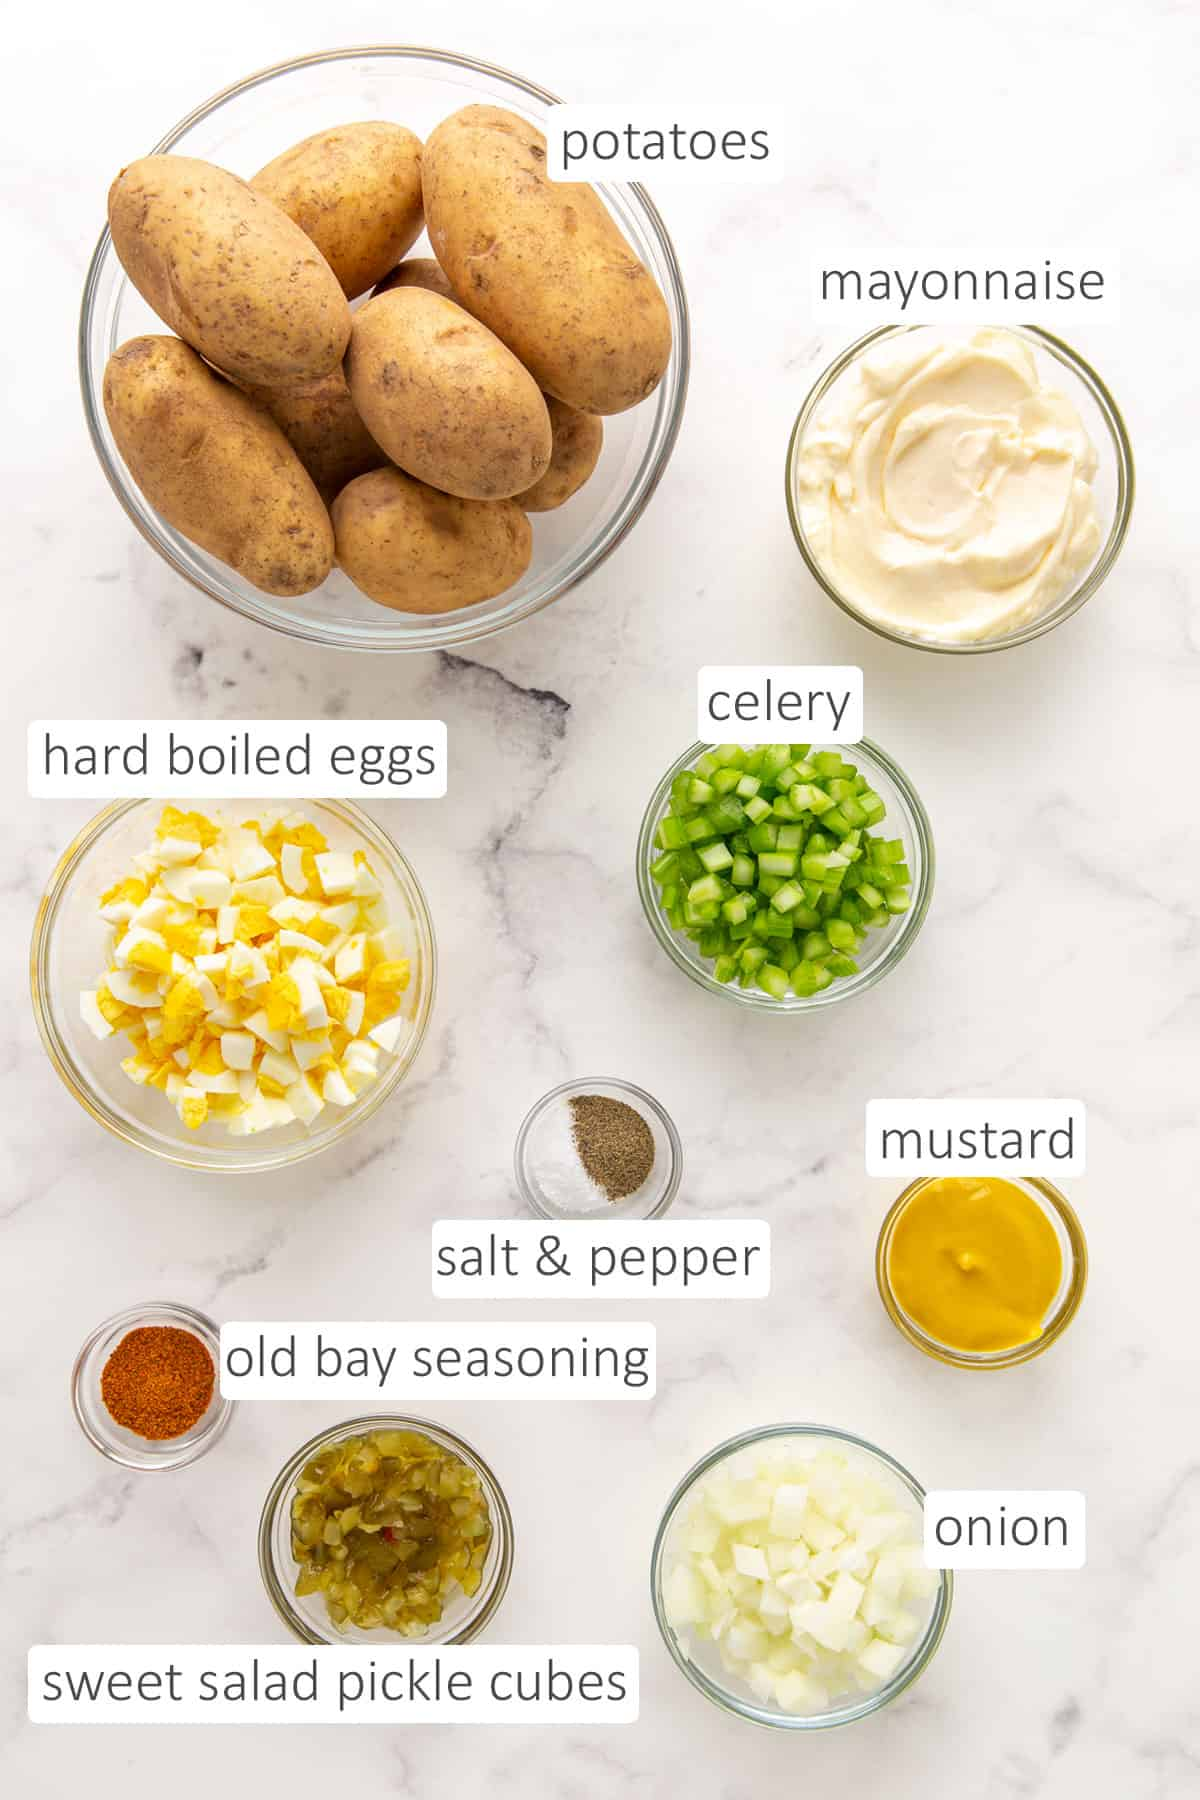 Overhead view of ingredients for making southern potato salad.